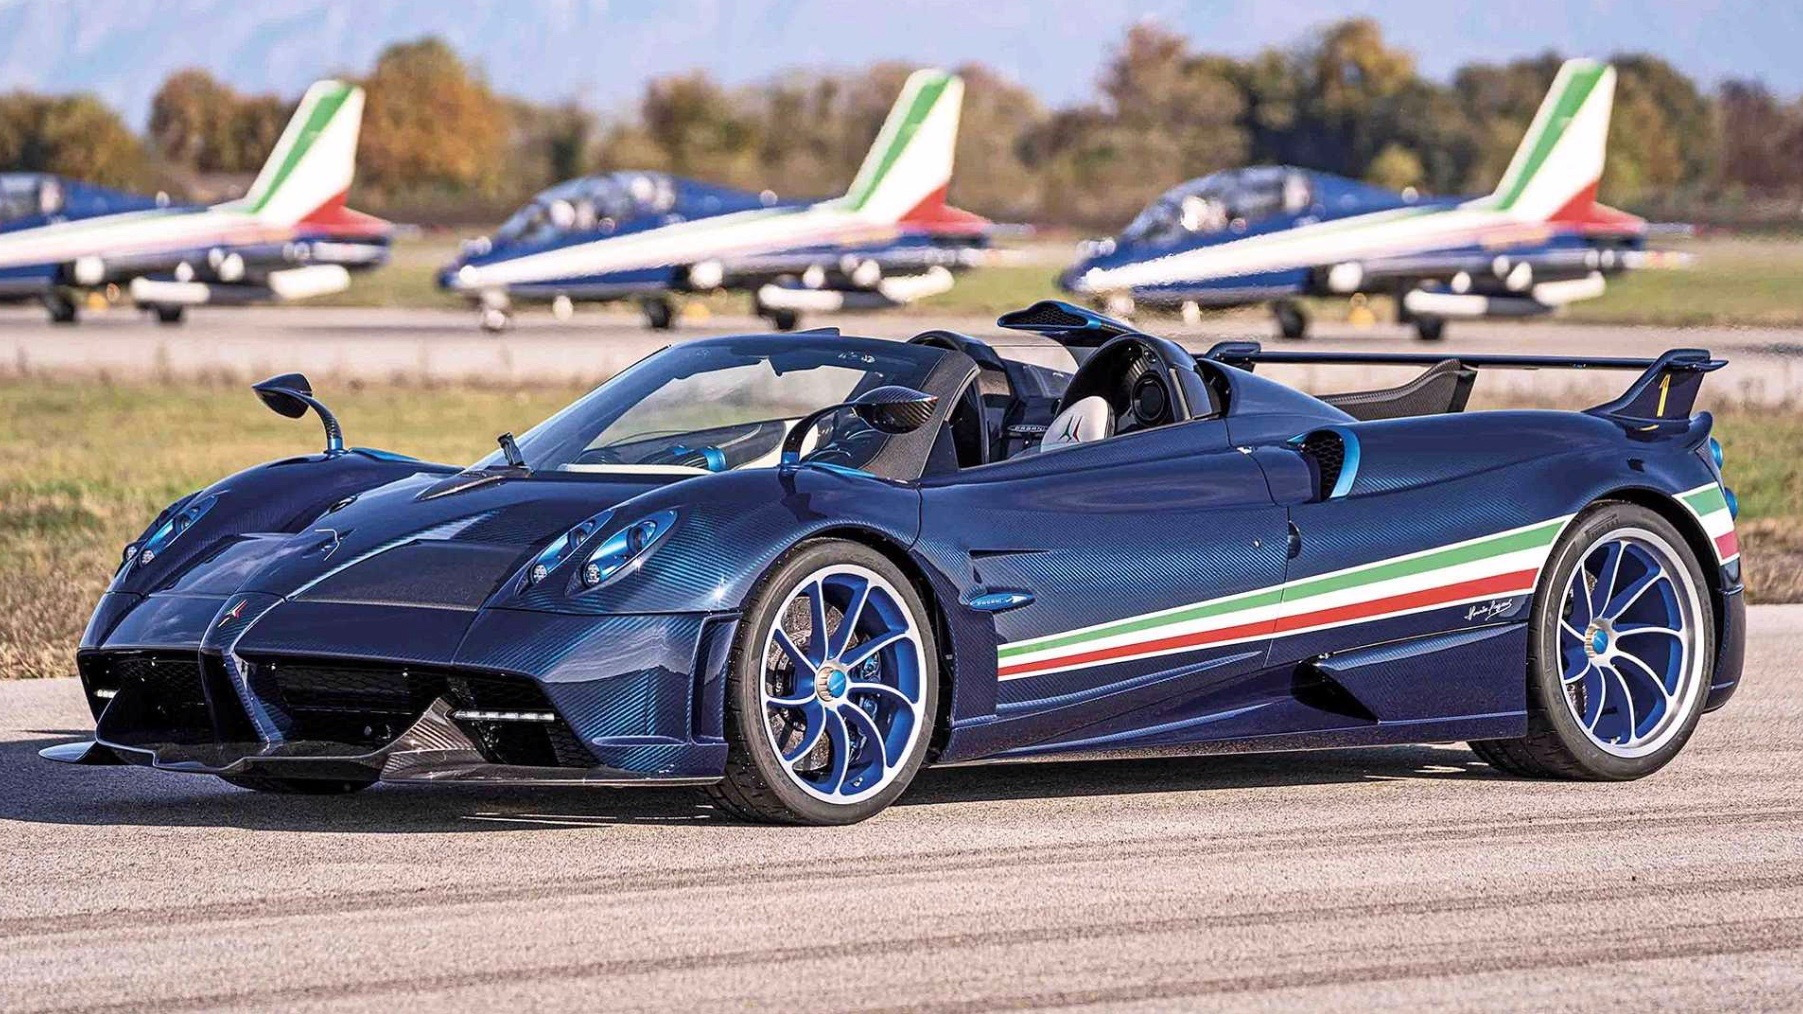 Pagani's 829hp Huayra Tricolore is a Rs. 50 crore hypercar